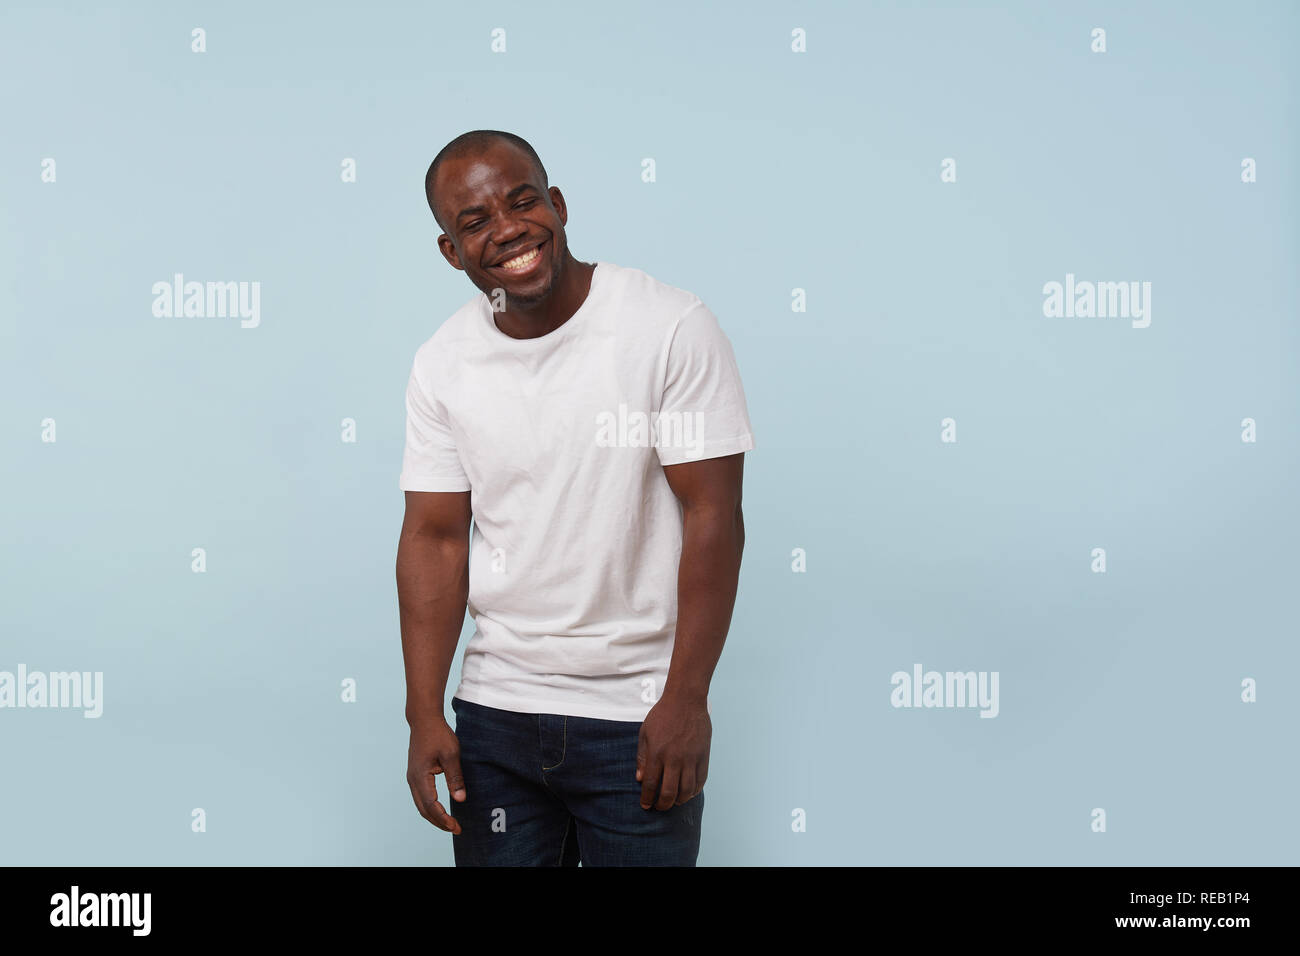 Handsome bold black man in white T-shirt grimacing against pale blue background. Relaxed, arms down, giggling, eyes closed. Laughing at something funn - Stock Image